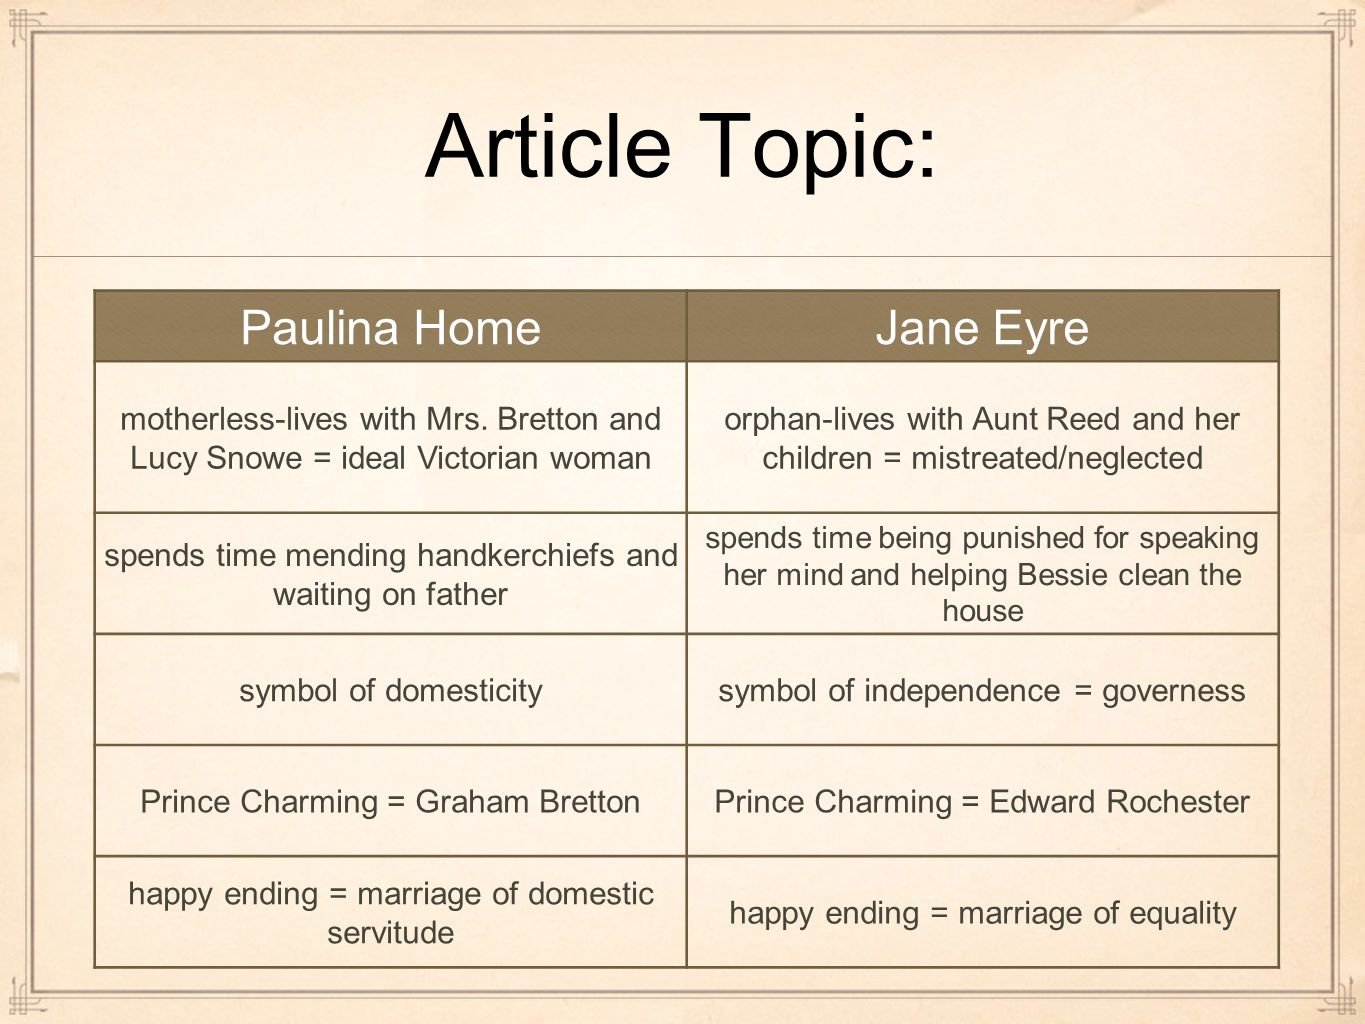 essay questions on jane eyre Jane eyre essay topics shockey • ib 12 hl 2016 respond to one of these prompts discussing jane eyre write 1,500 words minimum, 12.